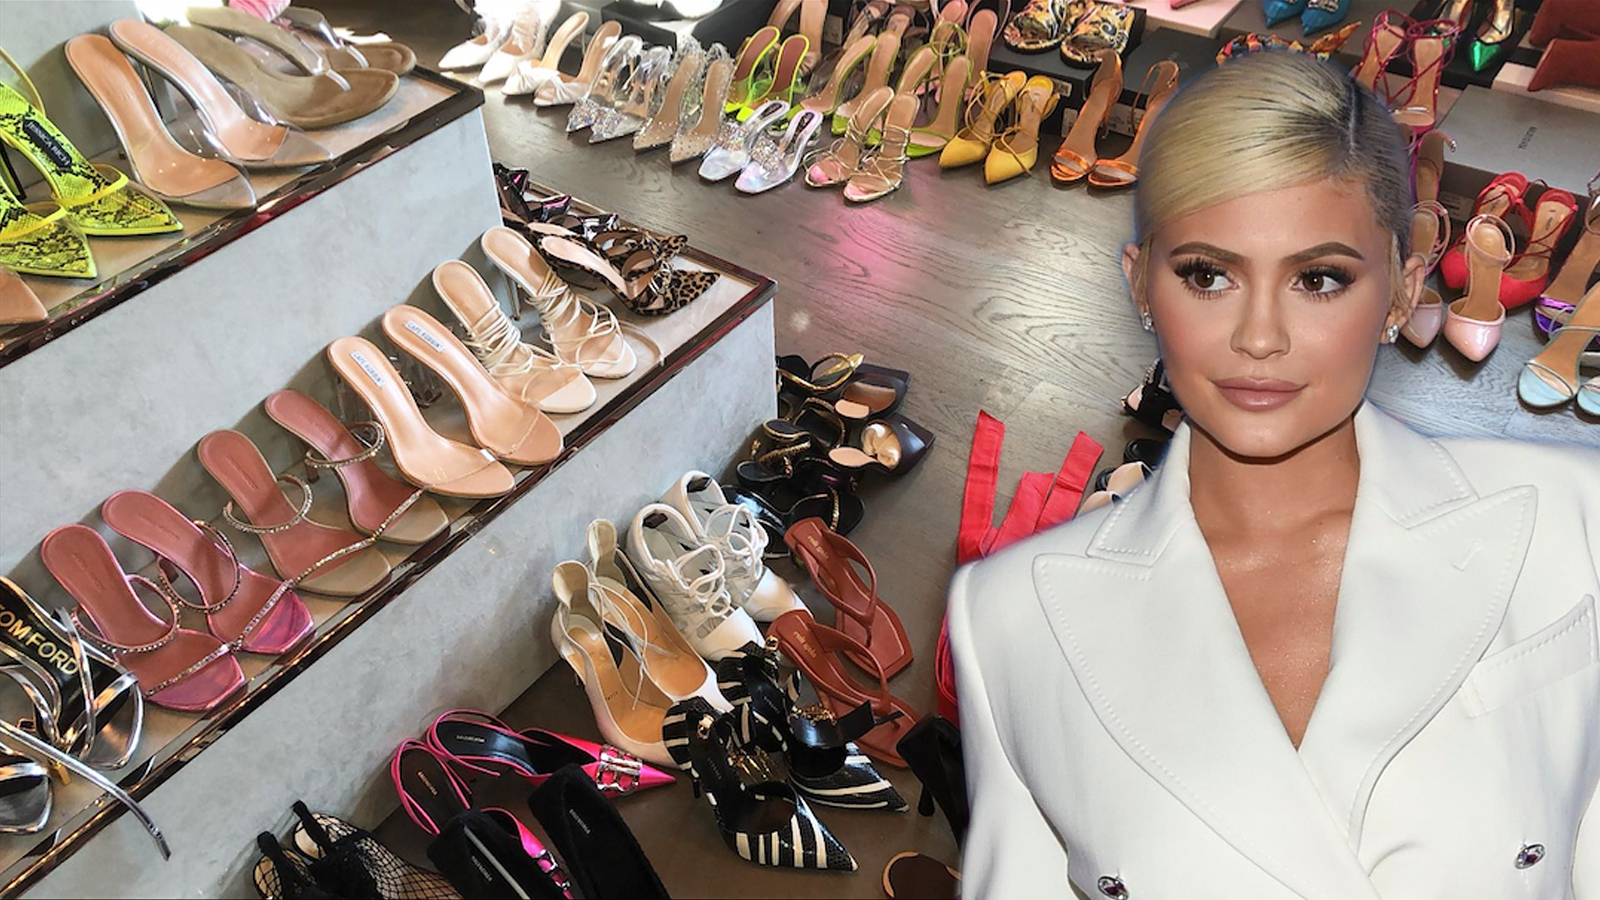 Kylie Jenner's Shoe Collection Will Even Make Carrie Bradshaw Jealous — Take a Tour of Her Closet!